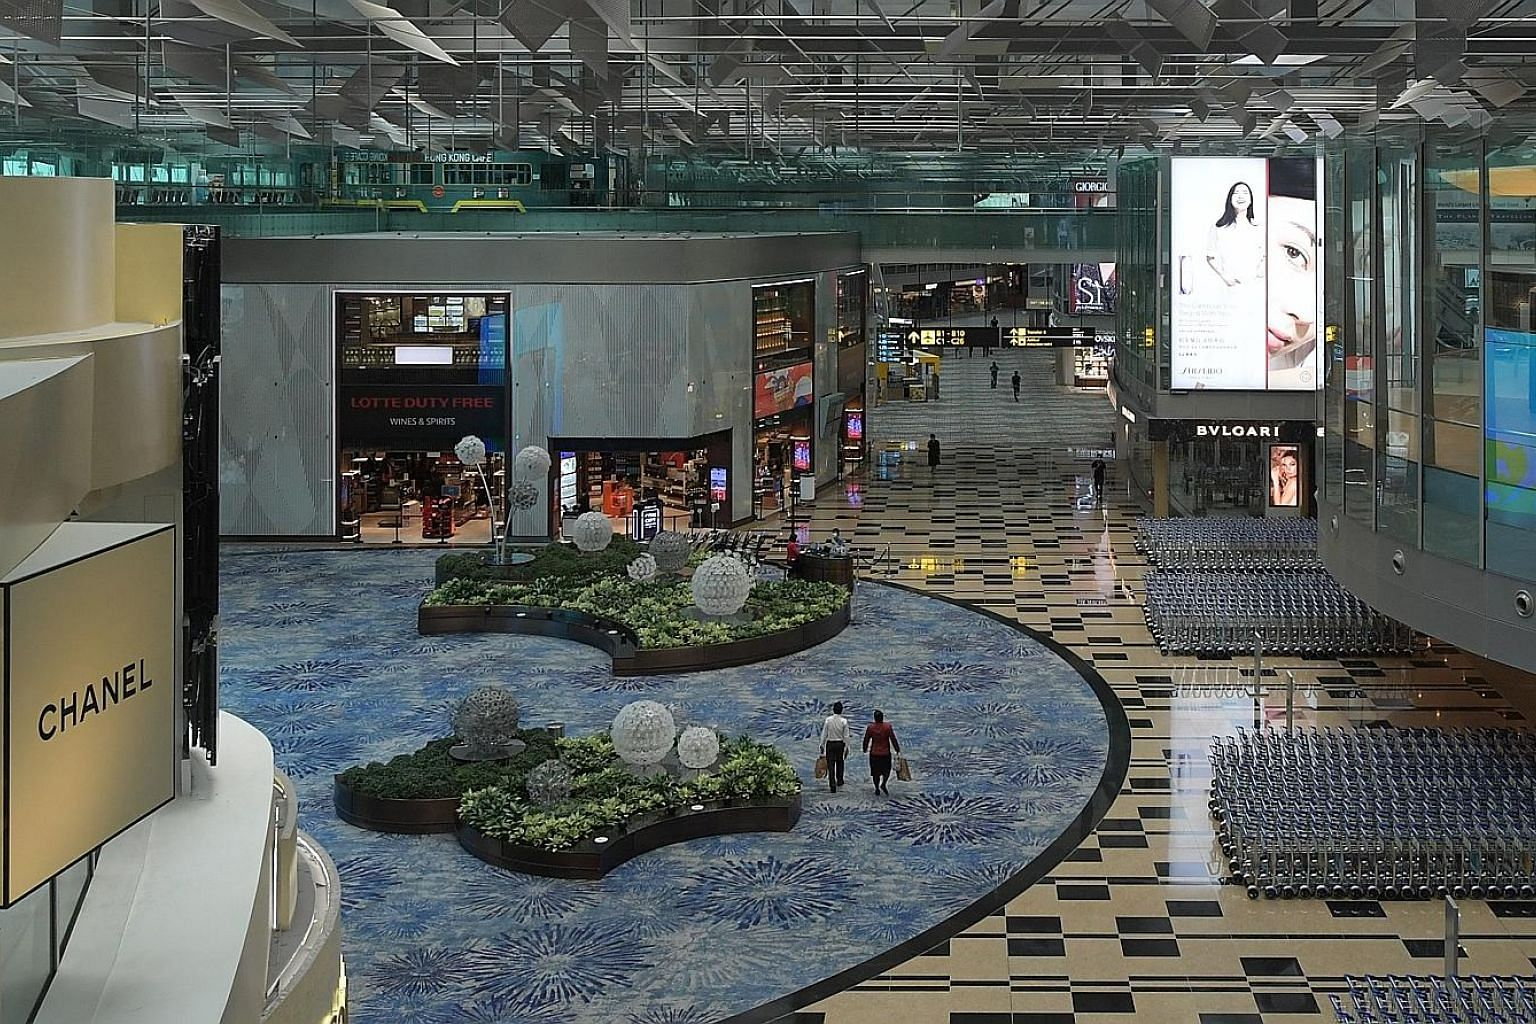 A near-empty transit area in Changi Airport Terminal 3 in June. Professor Teo Yik Ying of the Saw Swee Hock School of Public Health said at the ST webinar that people are exposed to various factors beyond their control when they travel.